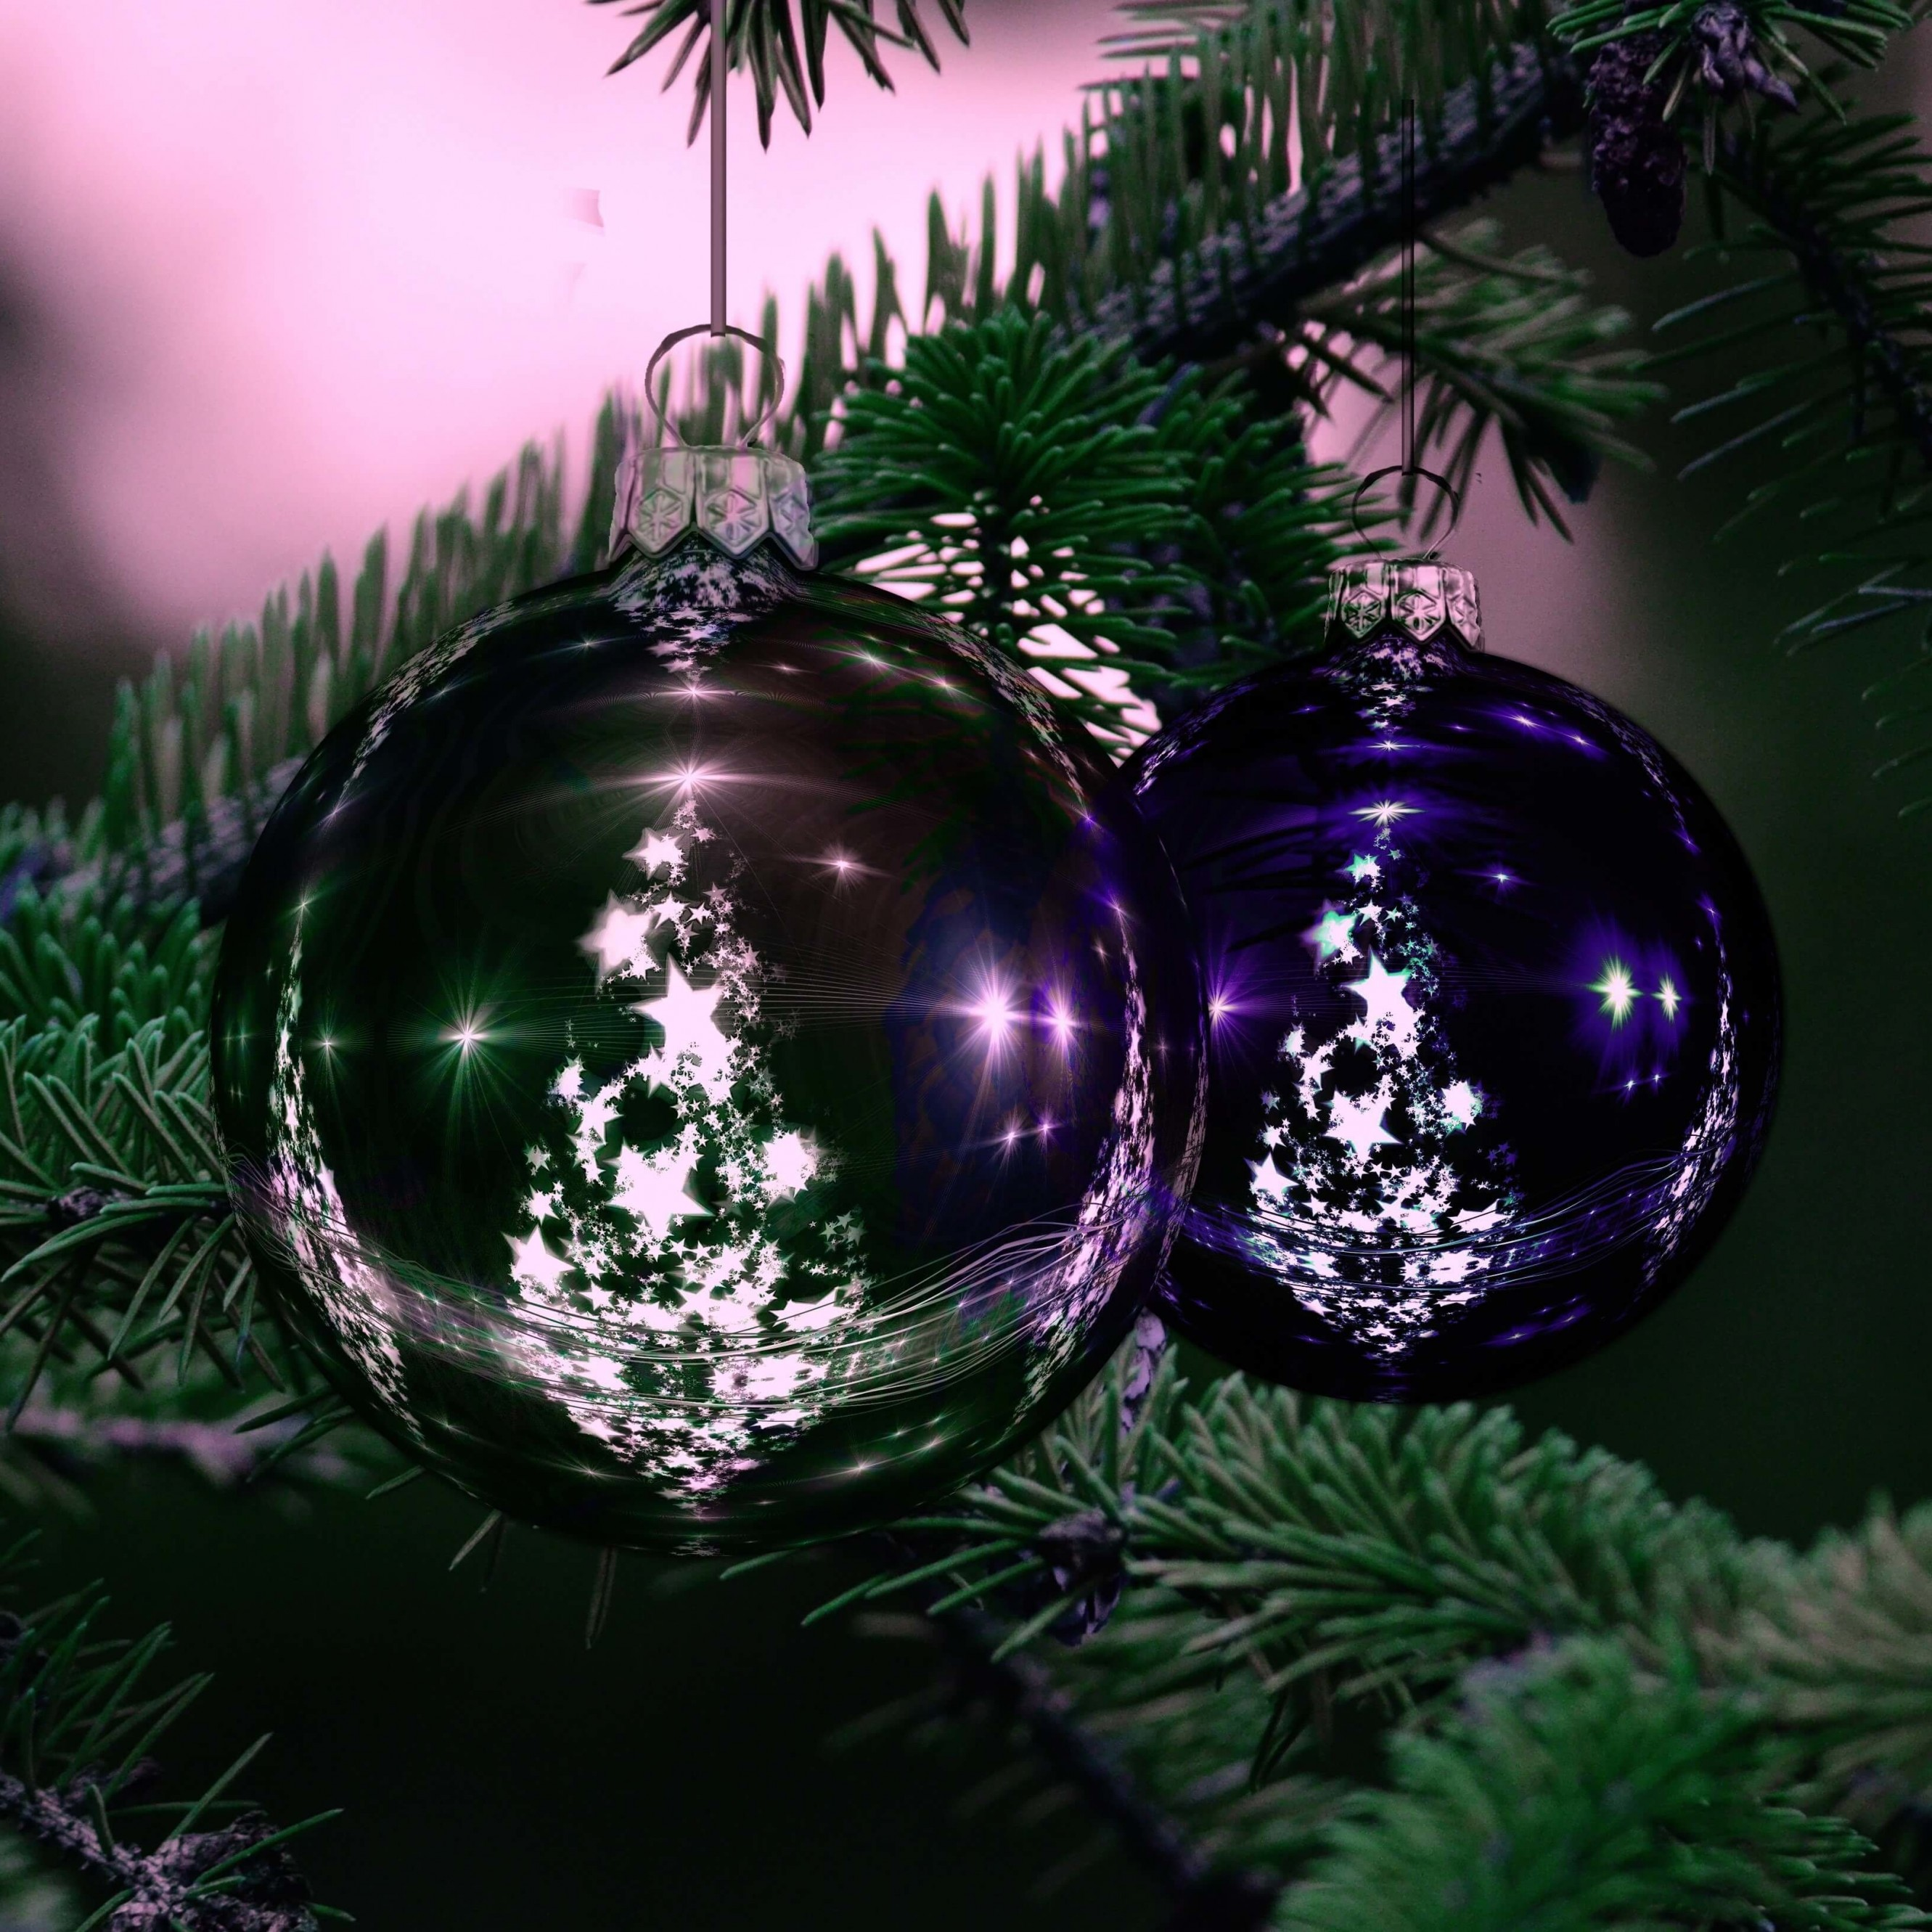 Beautiful Christmas Tree Ornaments Wallpaper for Apple iPhone 6 Plus